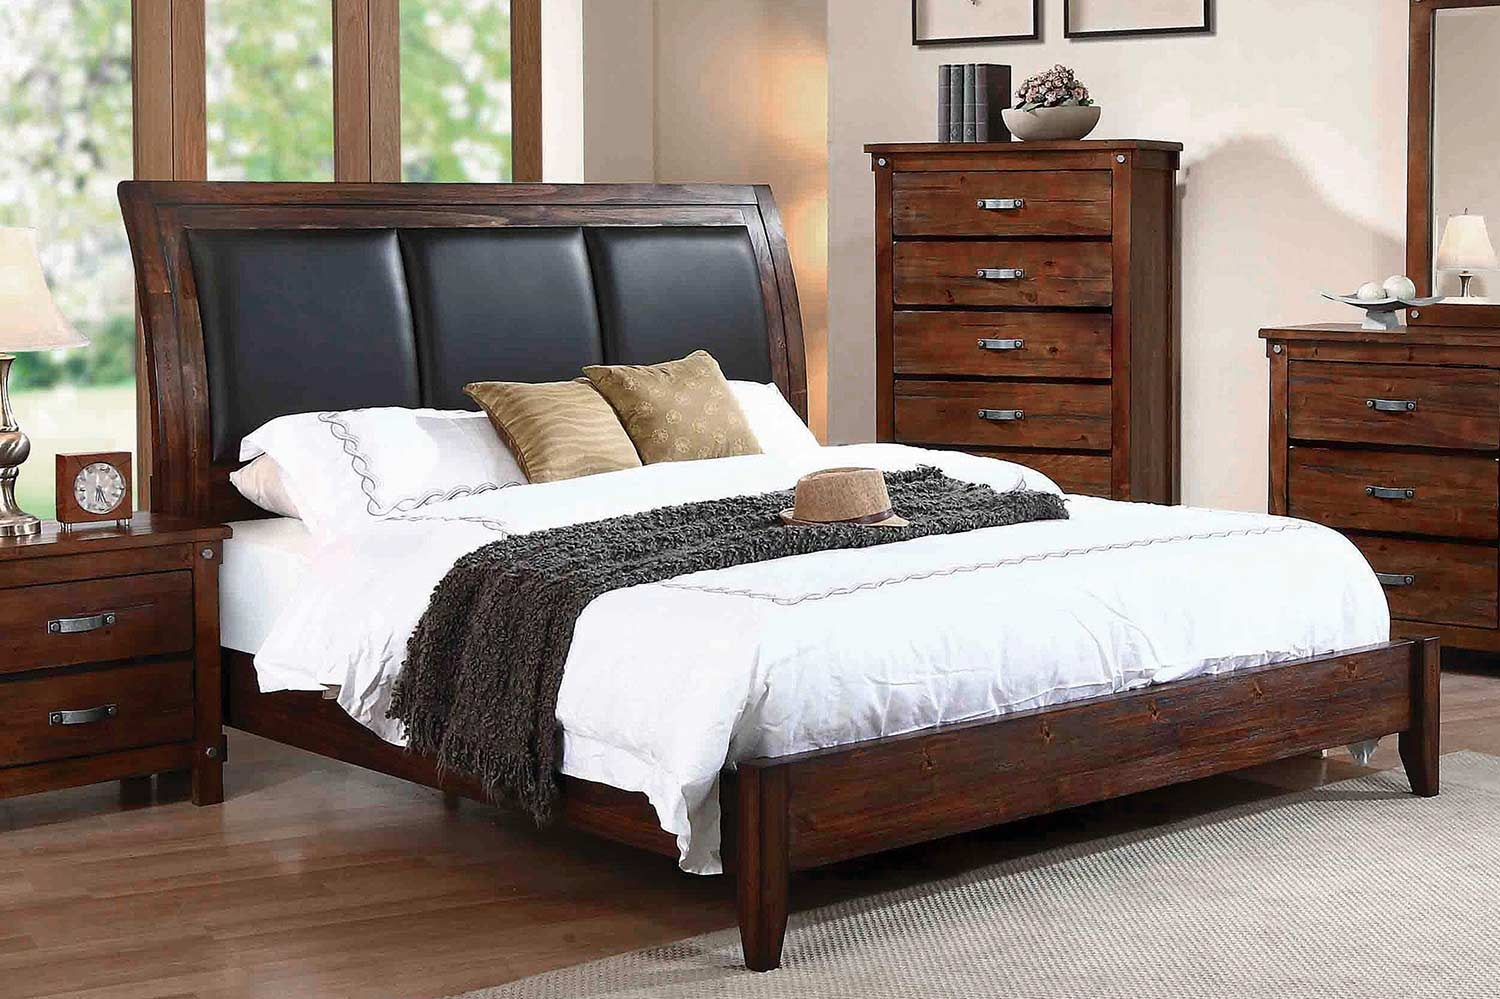 Coaster Noble Upholstered Low Profile Sleigh Bed - Rustic Oak